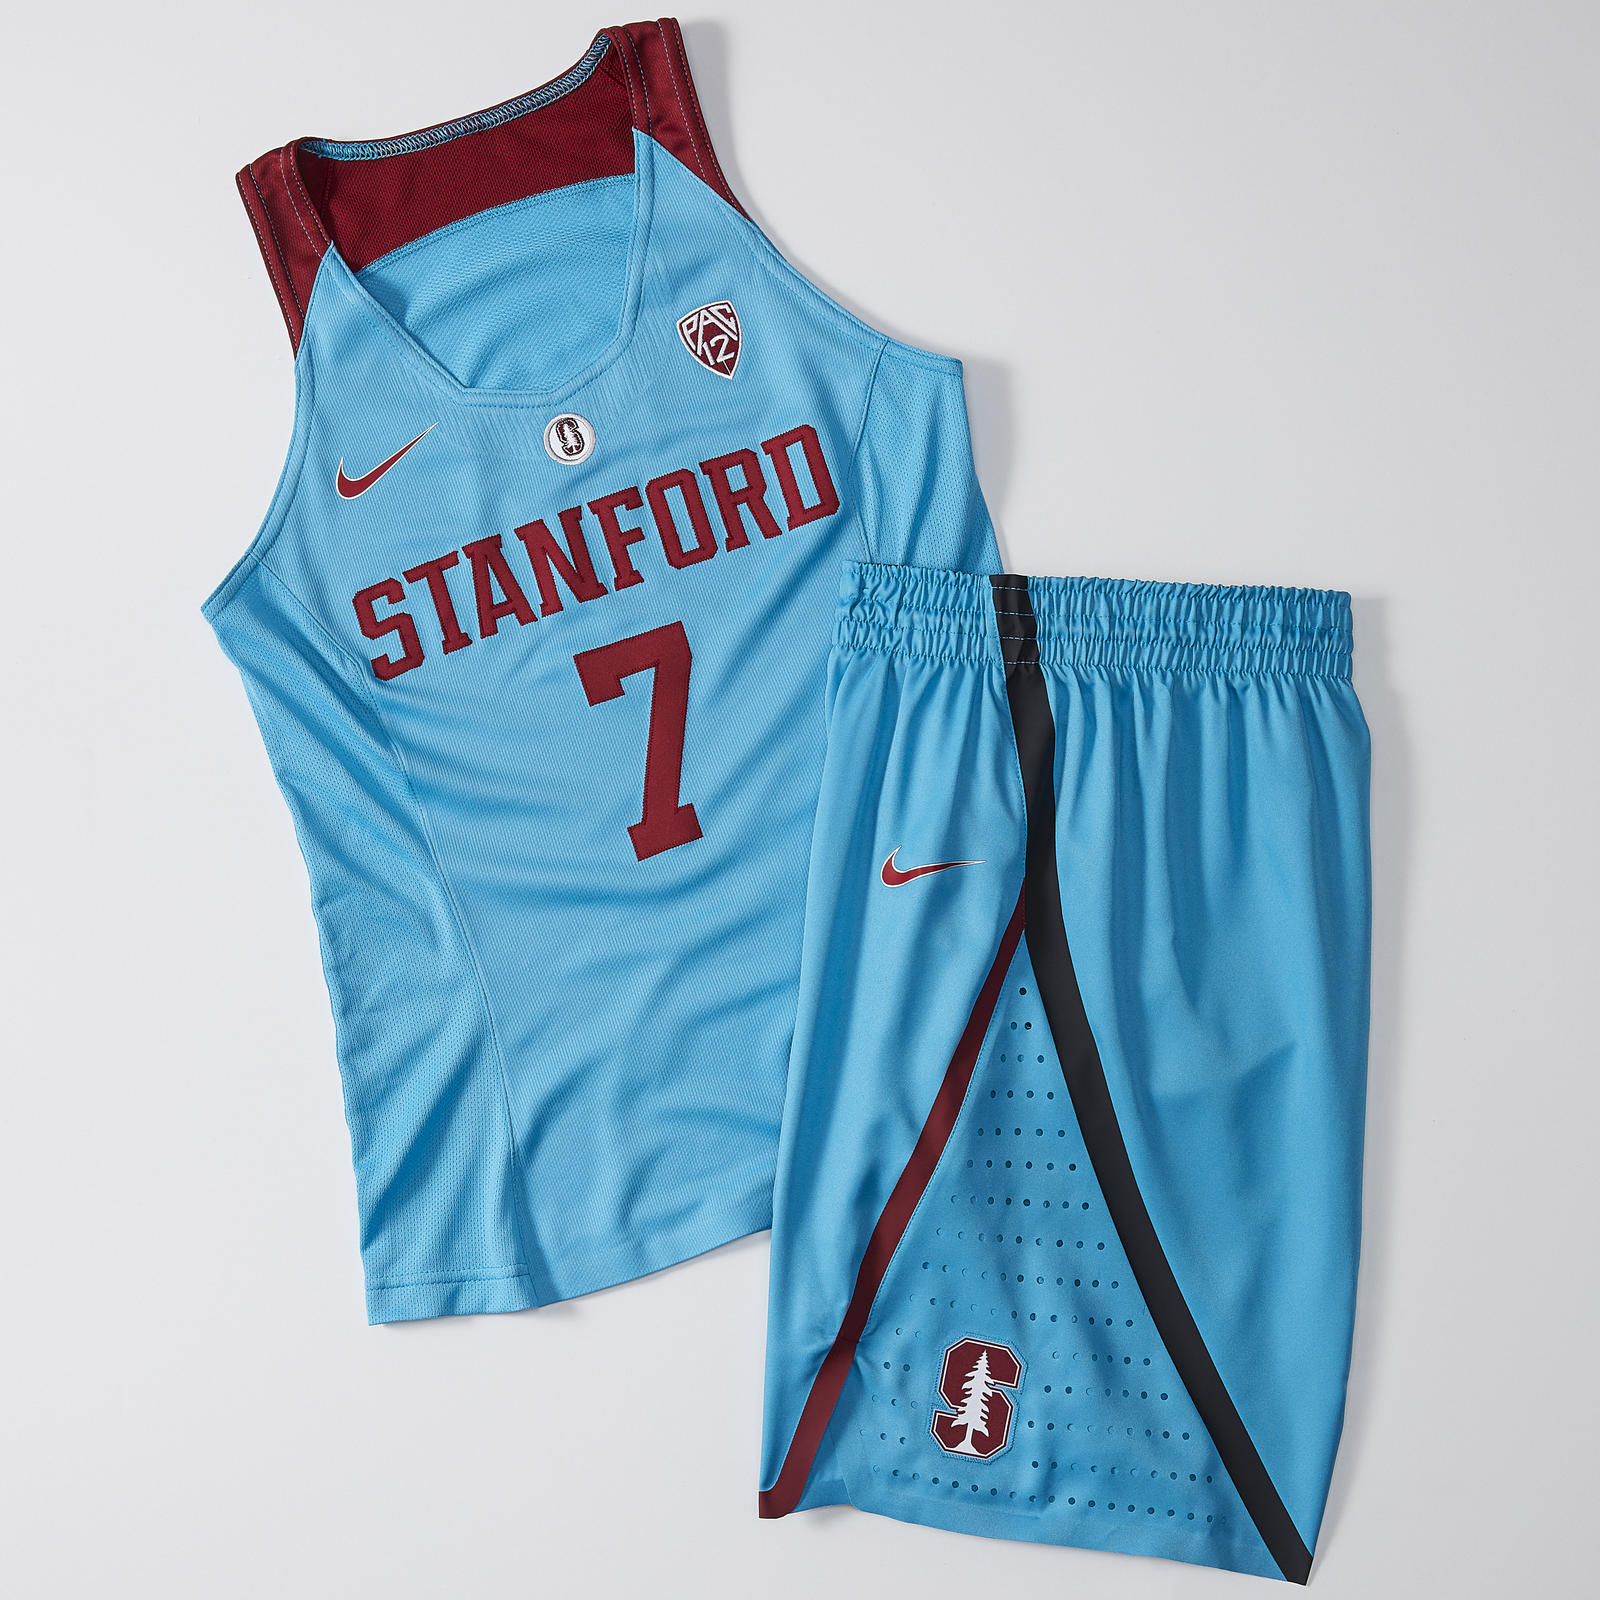 The Nike N7 College Basketball Uniform: More Than a Turquoise Jersey 6